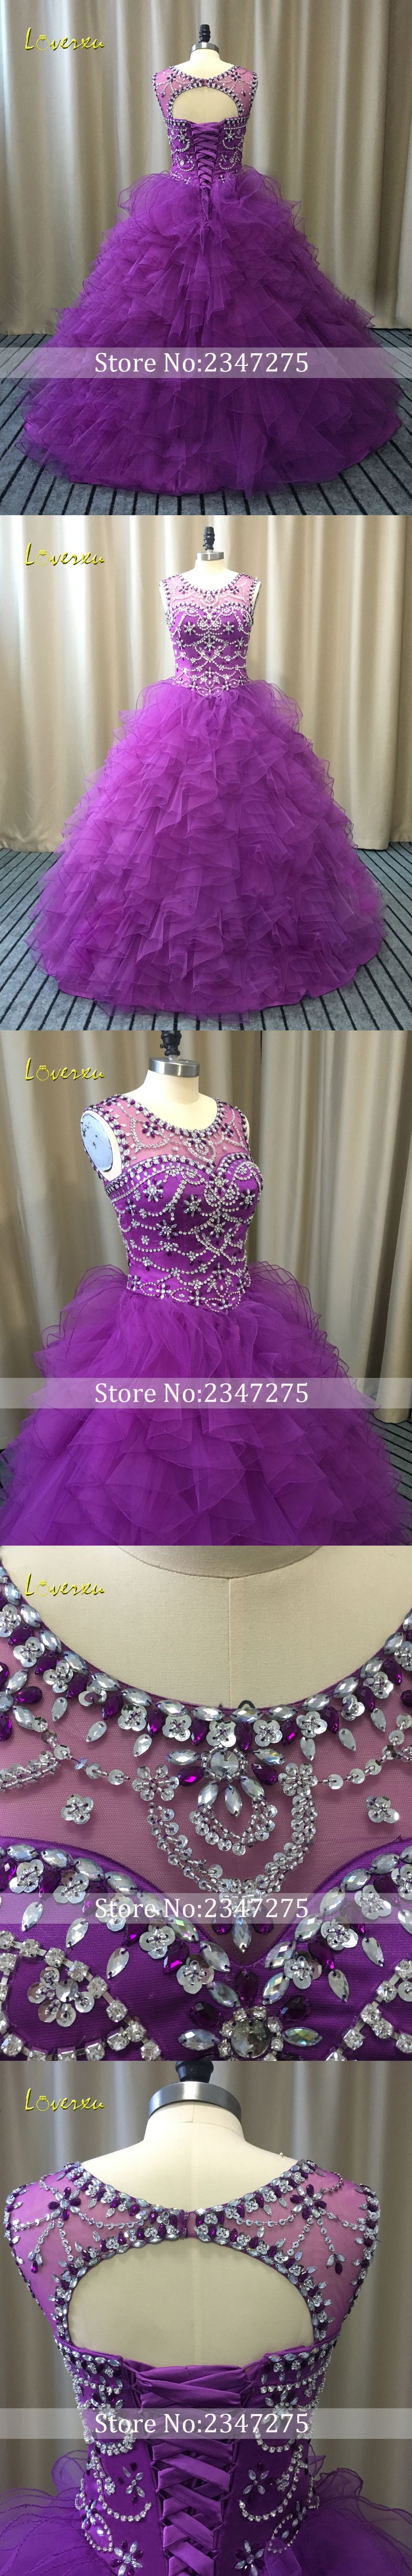 Loverxu scoop neck vintage ruffles ball gown quinceanera gown